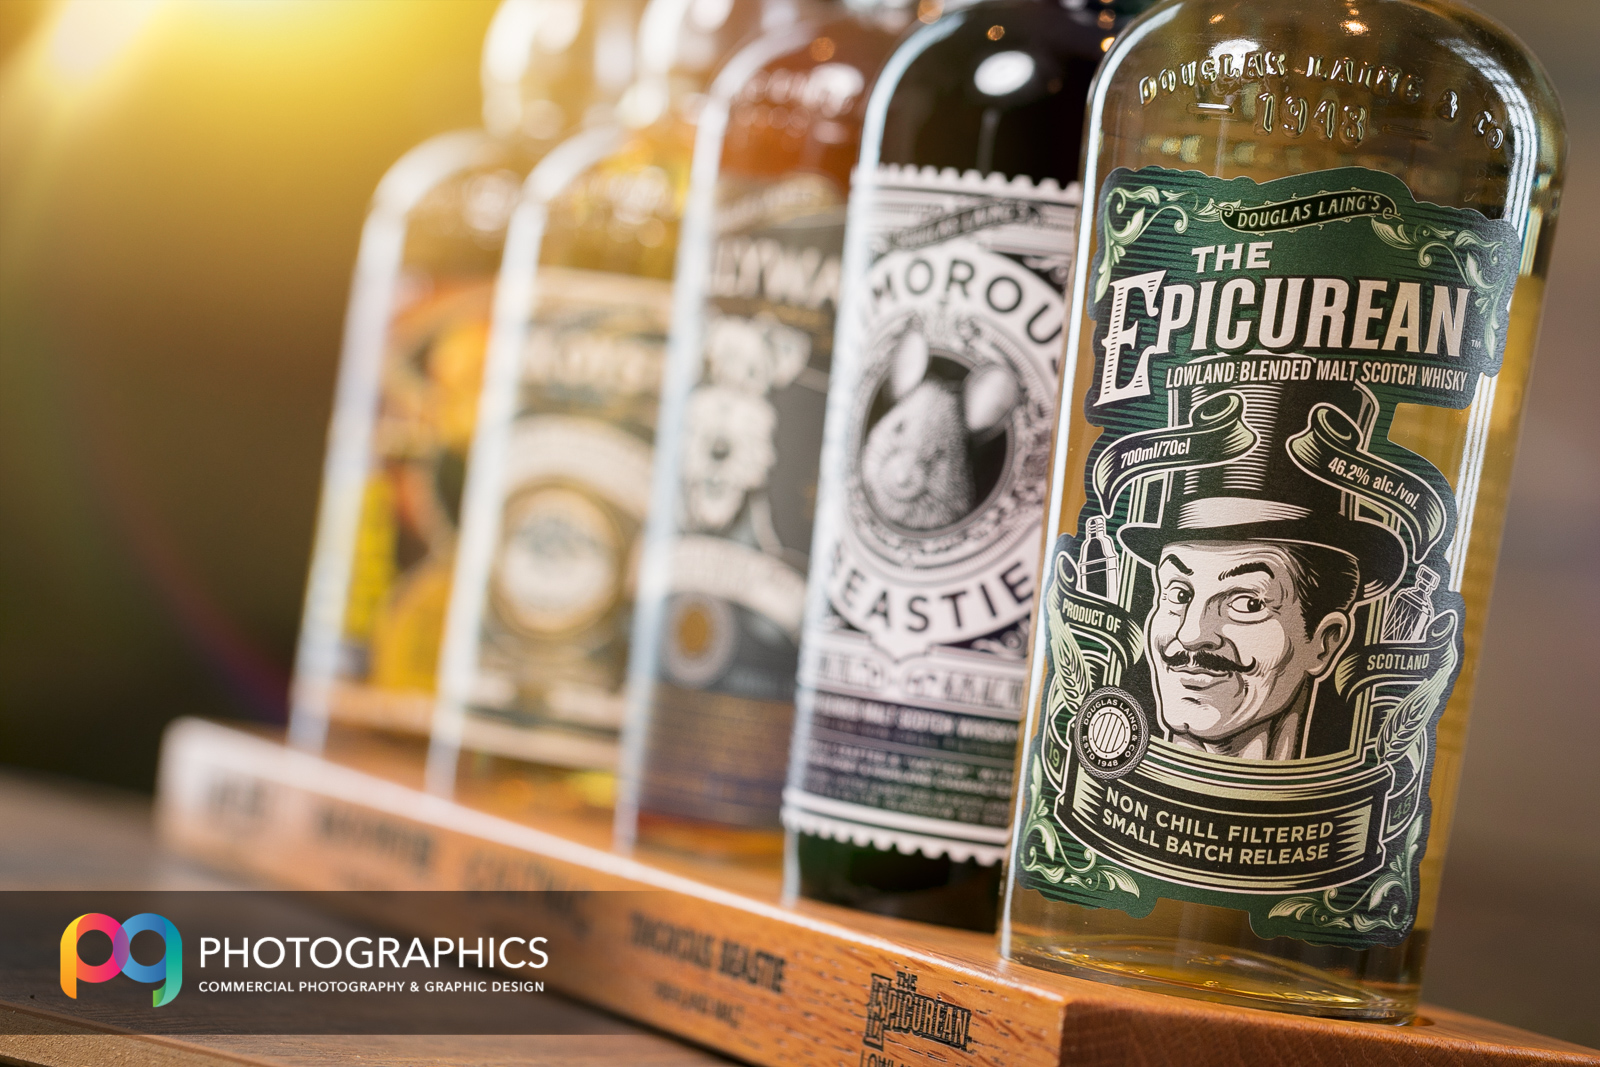 product-whisky-photography-glasgow-edinburgh-scotland-2.jpg